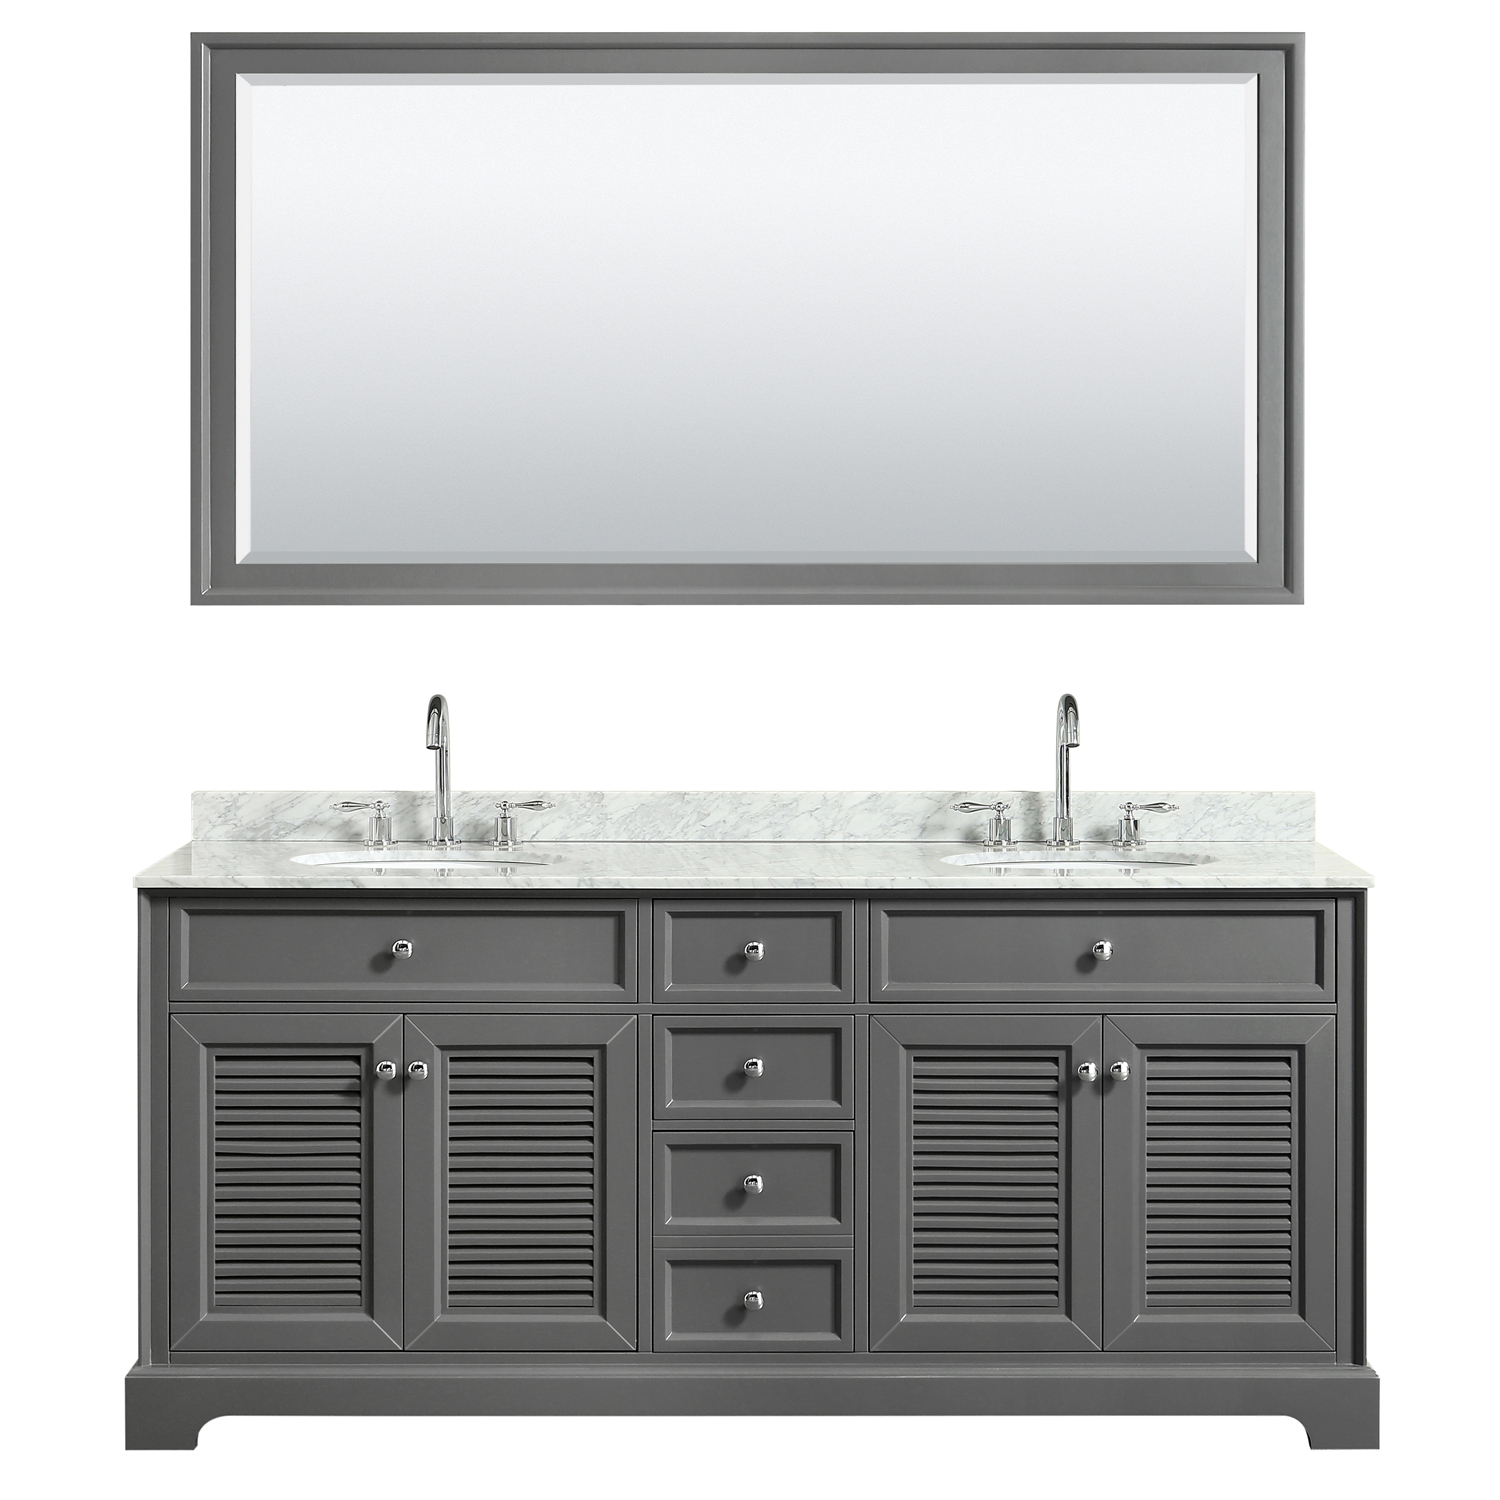 """72"""" Double Bathroom Vanity in White Carrara Marble Countertop with Undermount Sinks, Medicine Cabinet, Mirror and Color Options"""